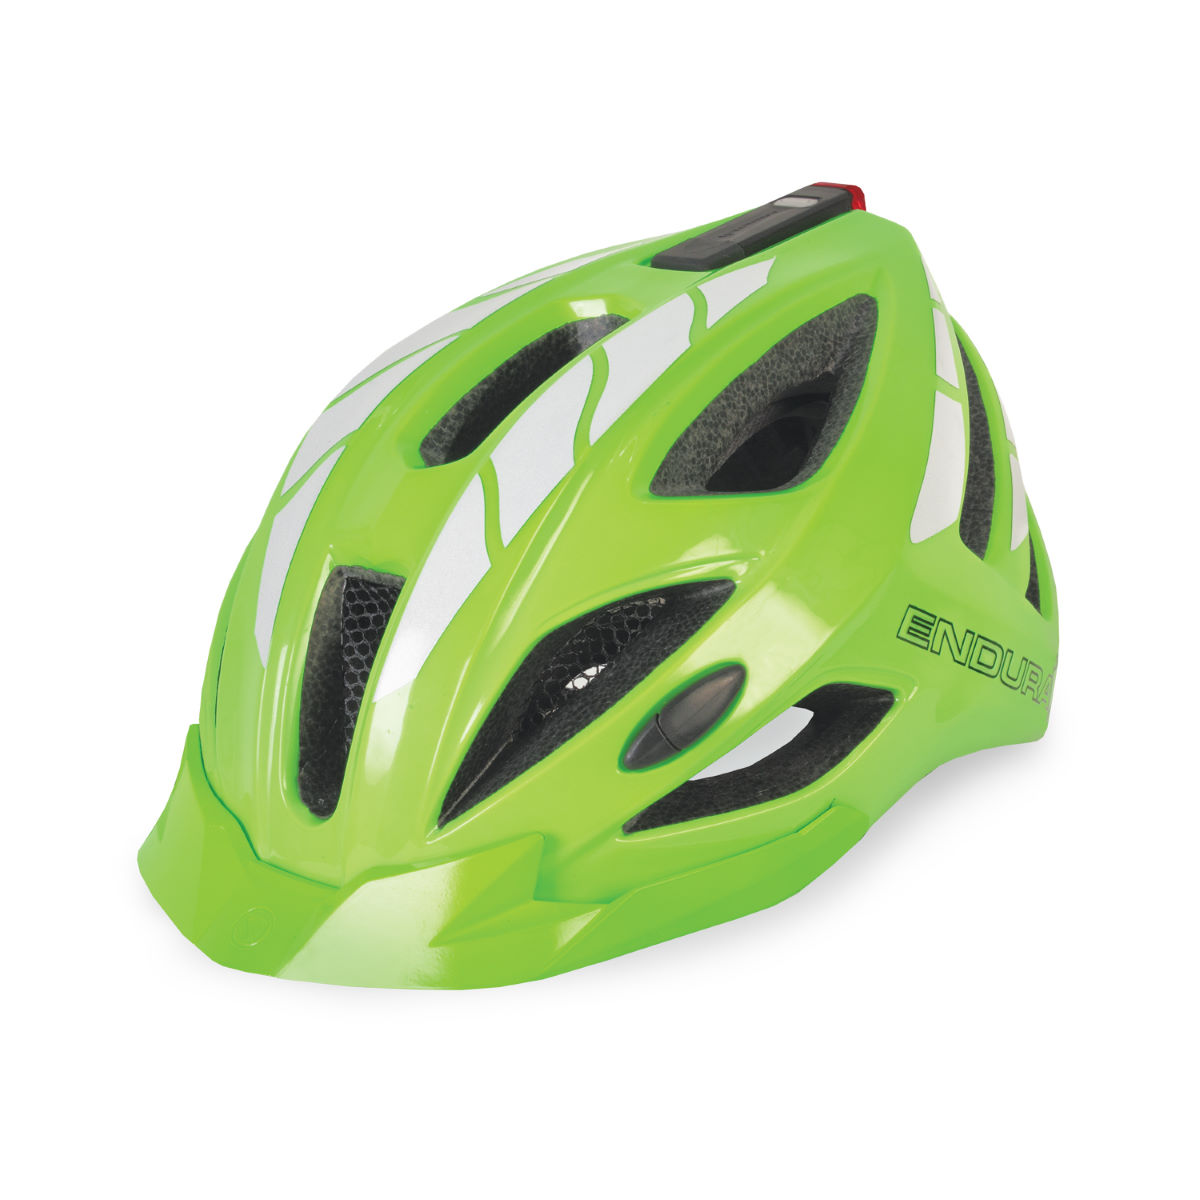 Casque Endura Luminite - S/M Vert Casques